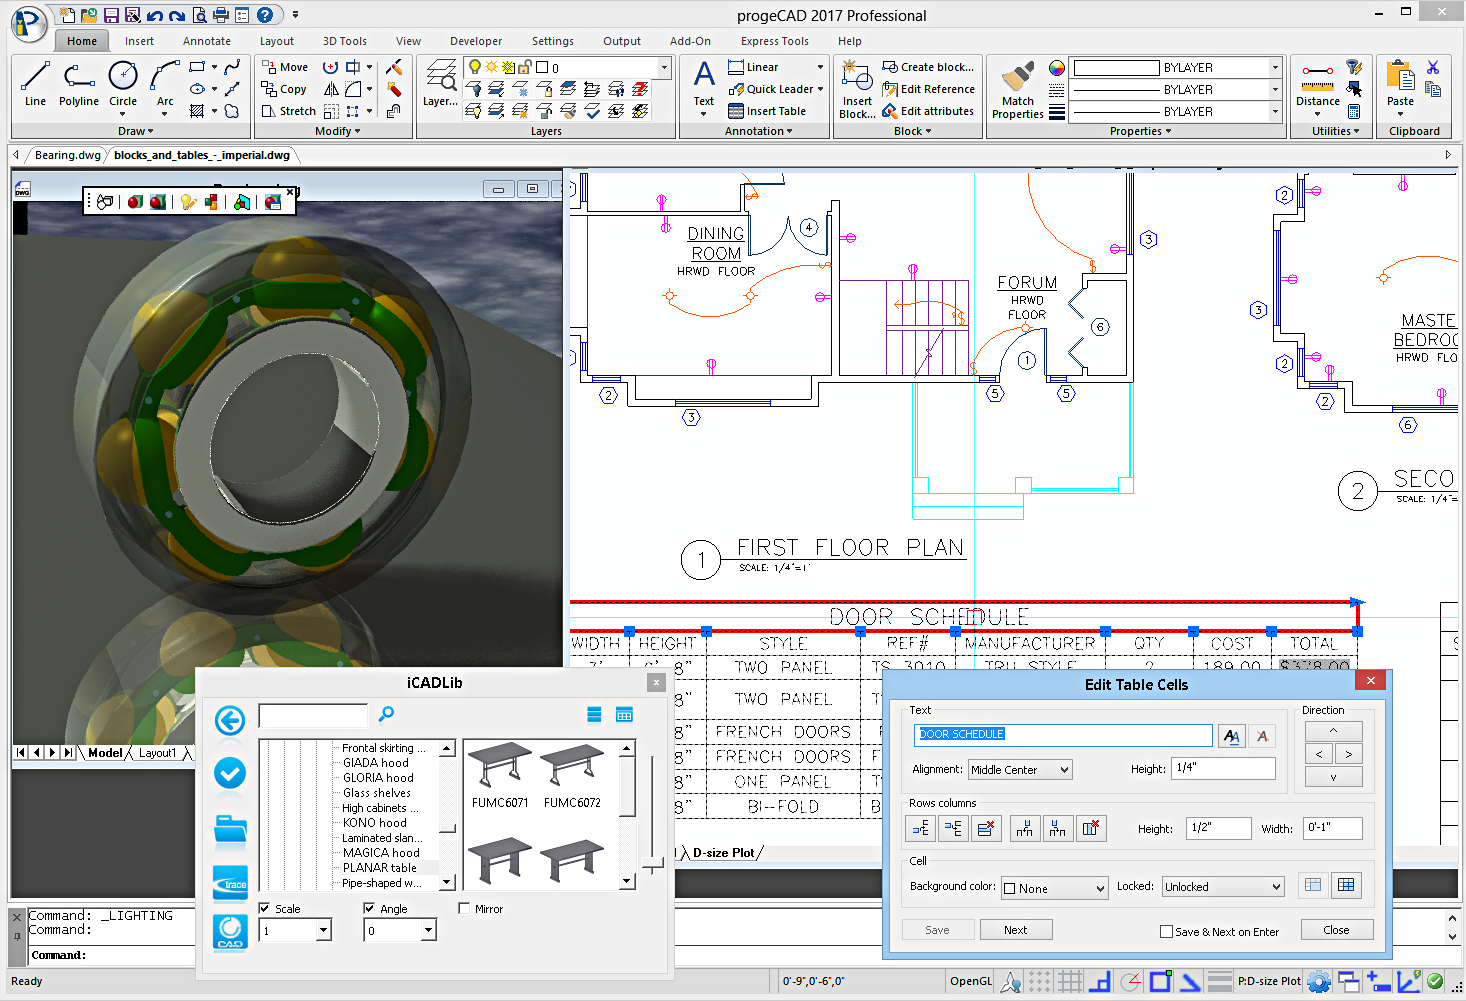 Progecad 2018 Professional Cad Software 2017 Full Free Download For Windows 10 8 1 7 64 32 Bit